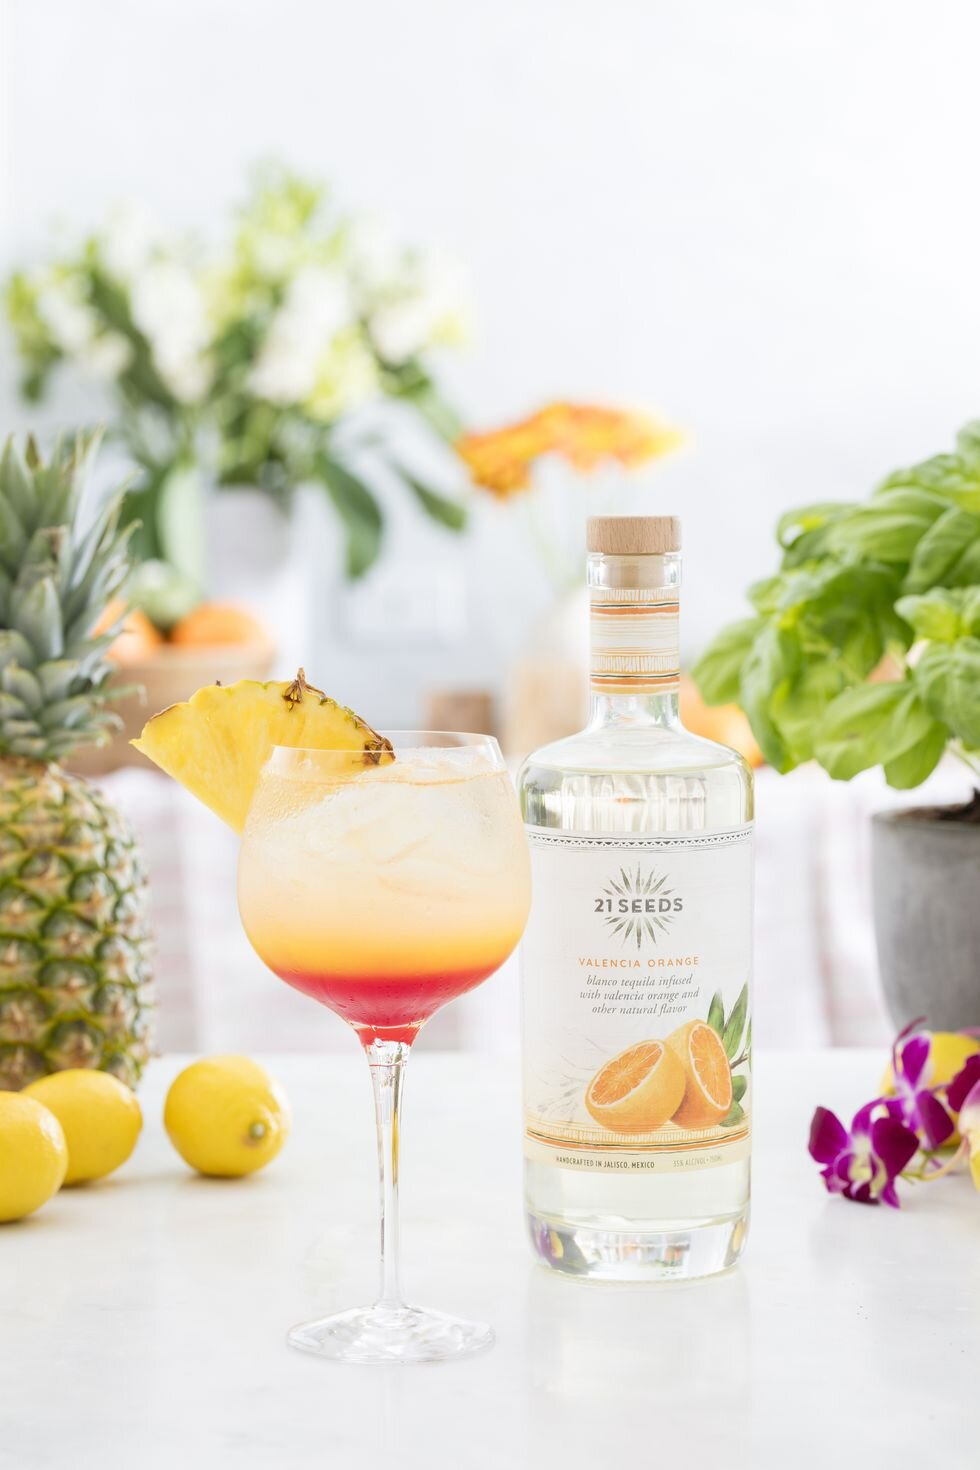 7. Sayulita Sunrise - Ingredients:1.5 oz. 21 Seeds Valencia Orange Tequila2 oz. pineapple juice1 oz. pomegranate juice2 oz. club sodaDirections:Place pomegranate juice at bottom of wine glass. Fill glass with ice. Slowly pour in club soda, followed by tequila, and finally pineapple juice. Garnish with wedge of fresh pineapple or round slice of orange.